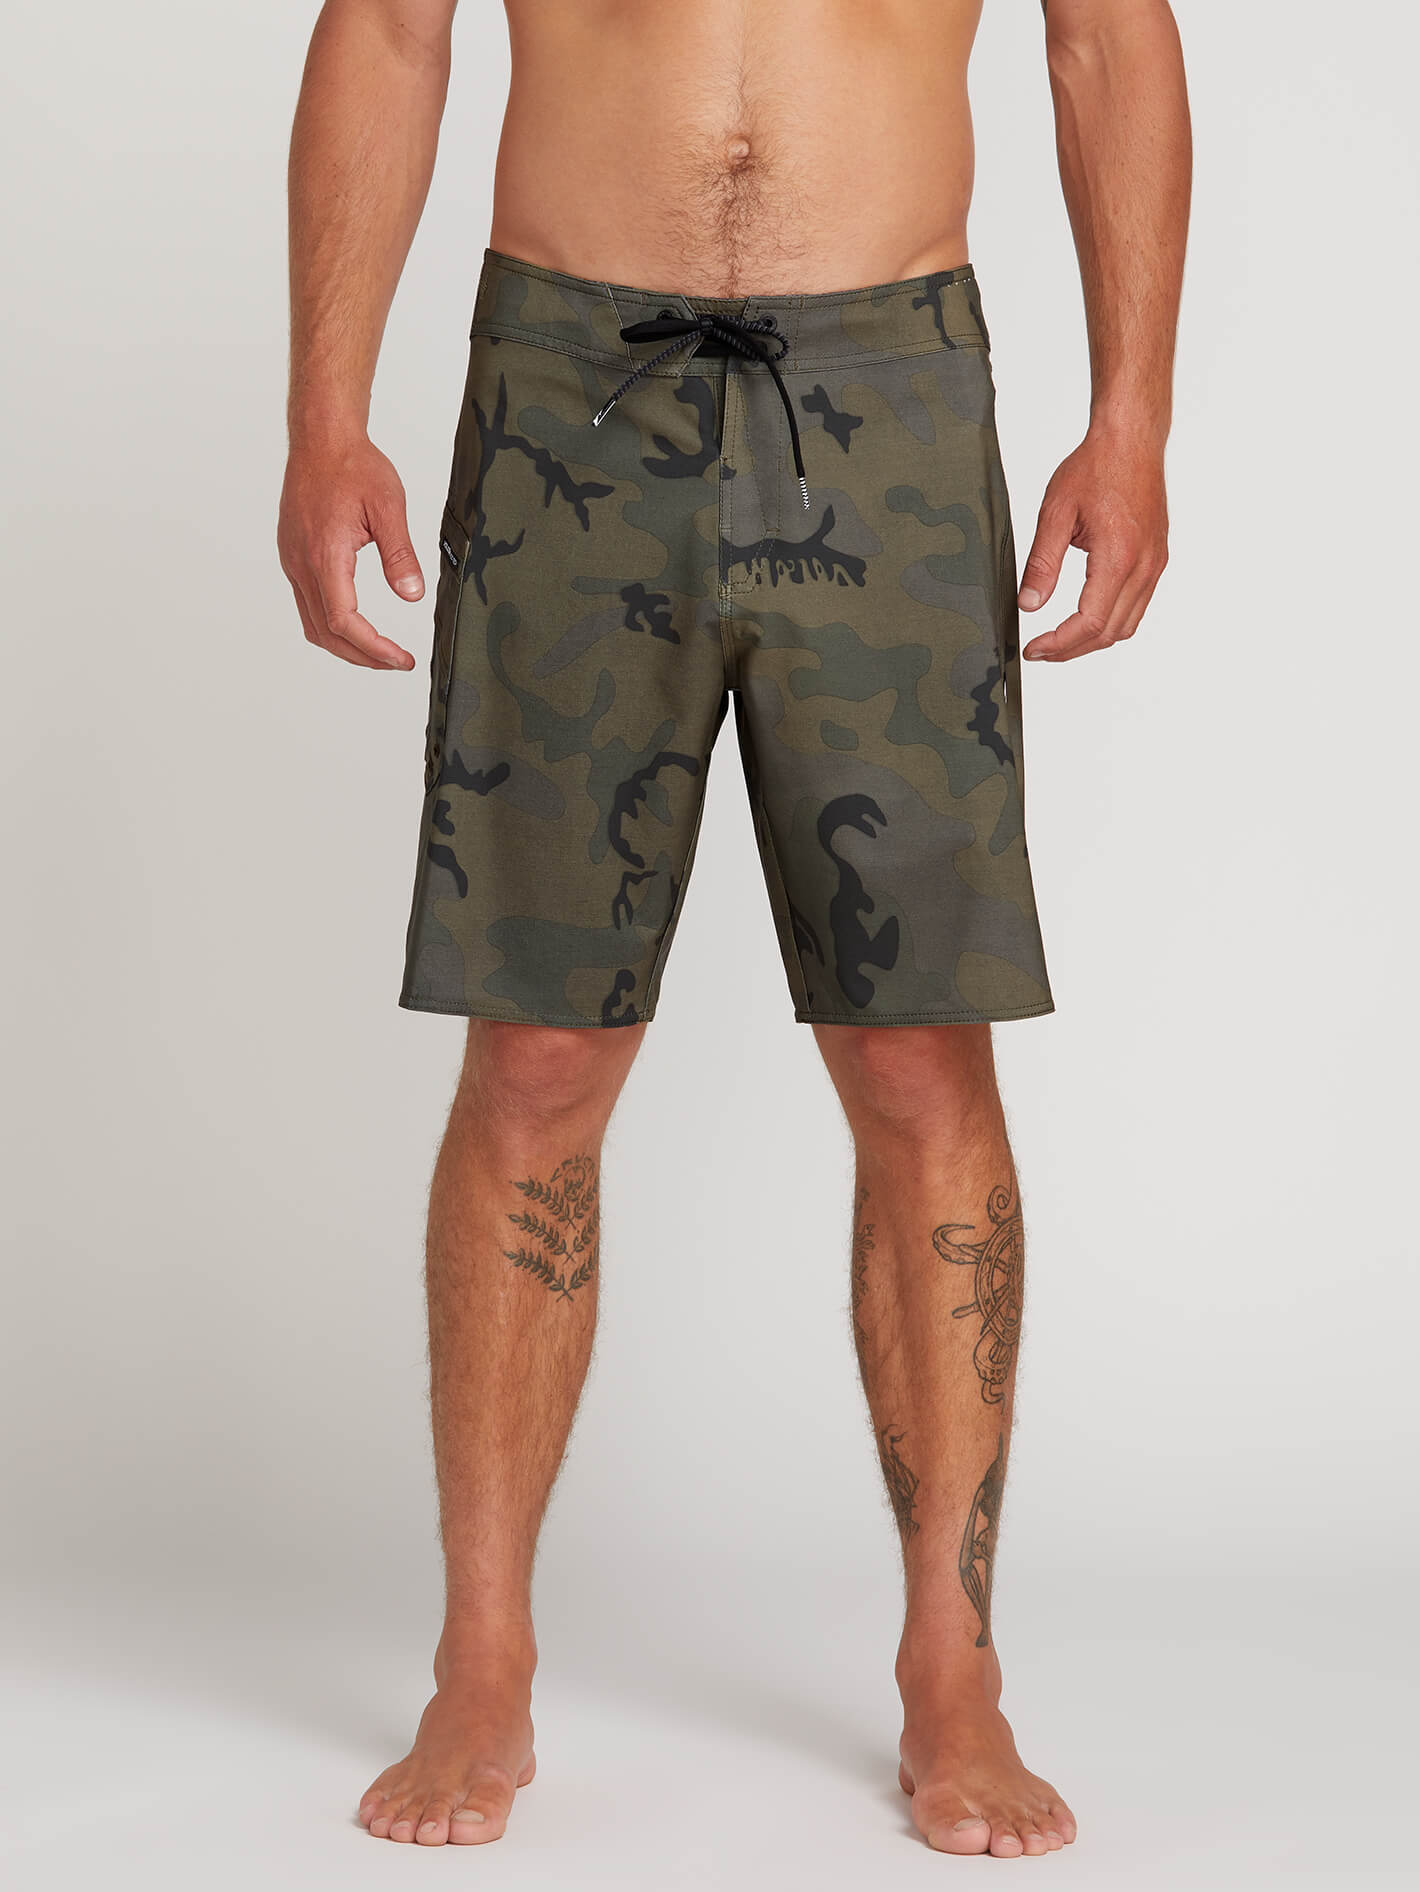 e6c3844b42 Lido Solid Mod Trunks - Camouflage in CAMOUFLAGE - Alternative View